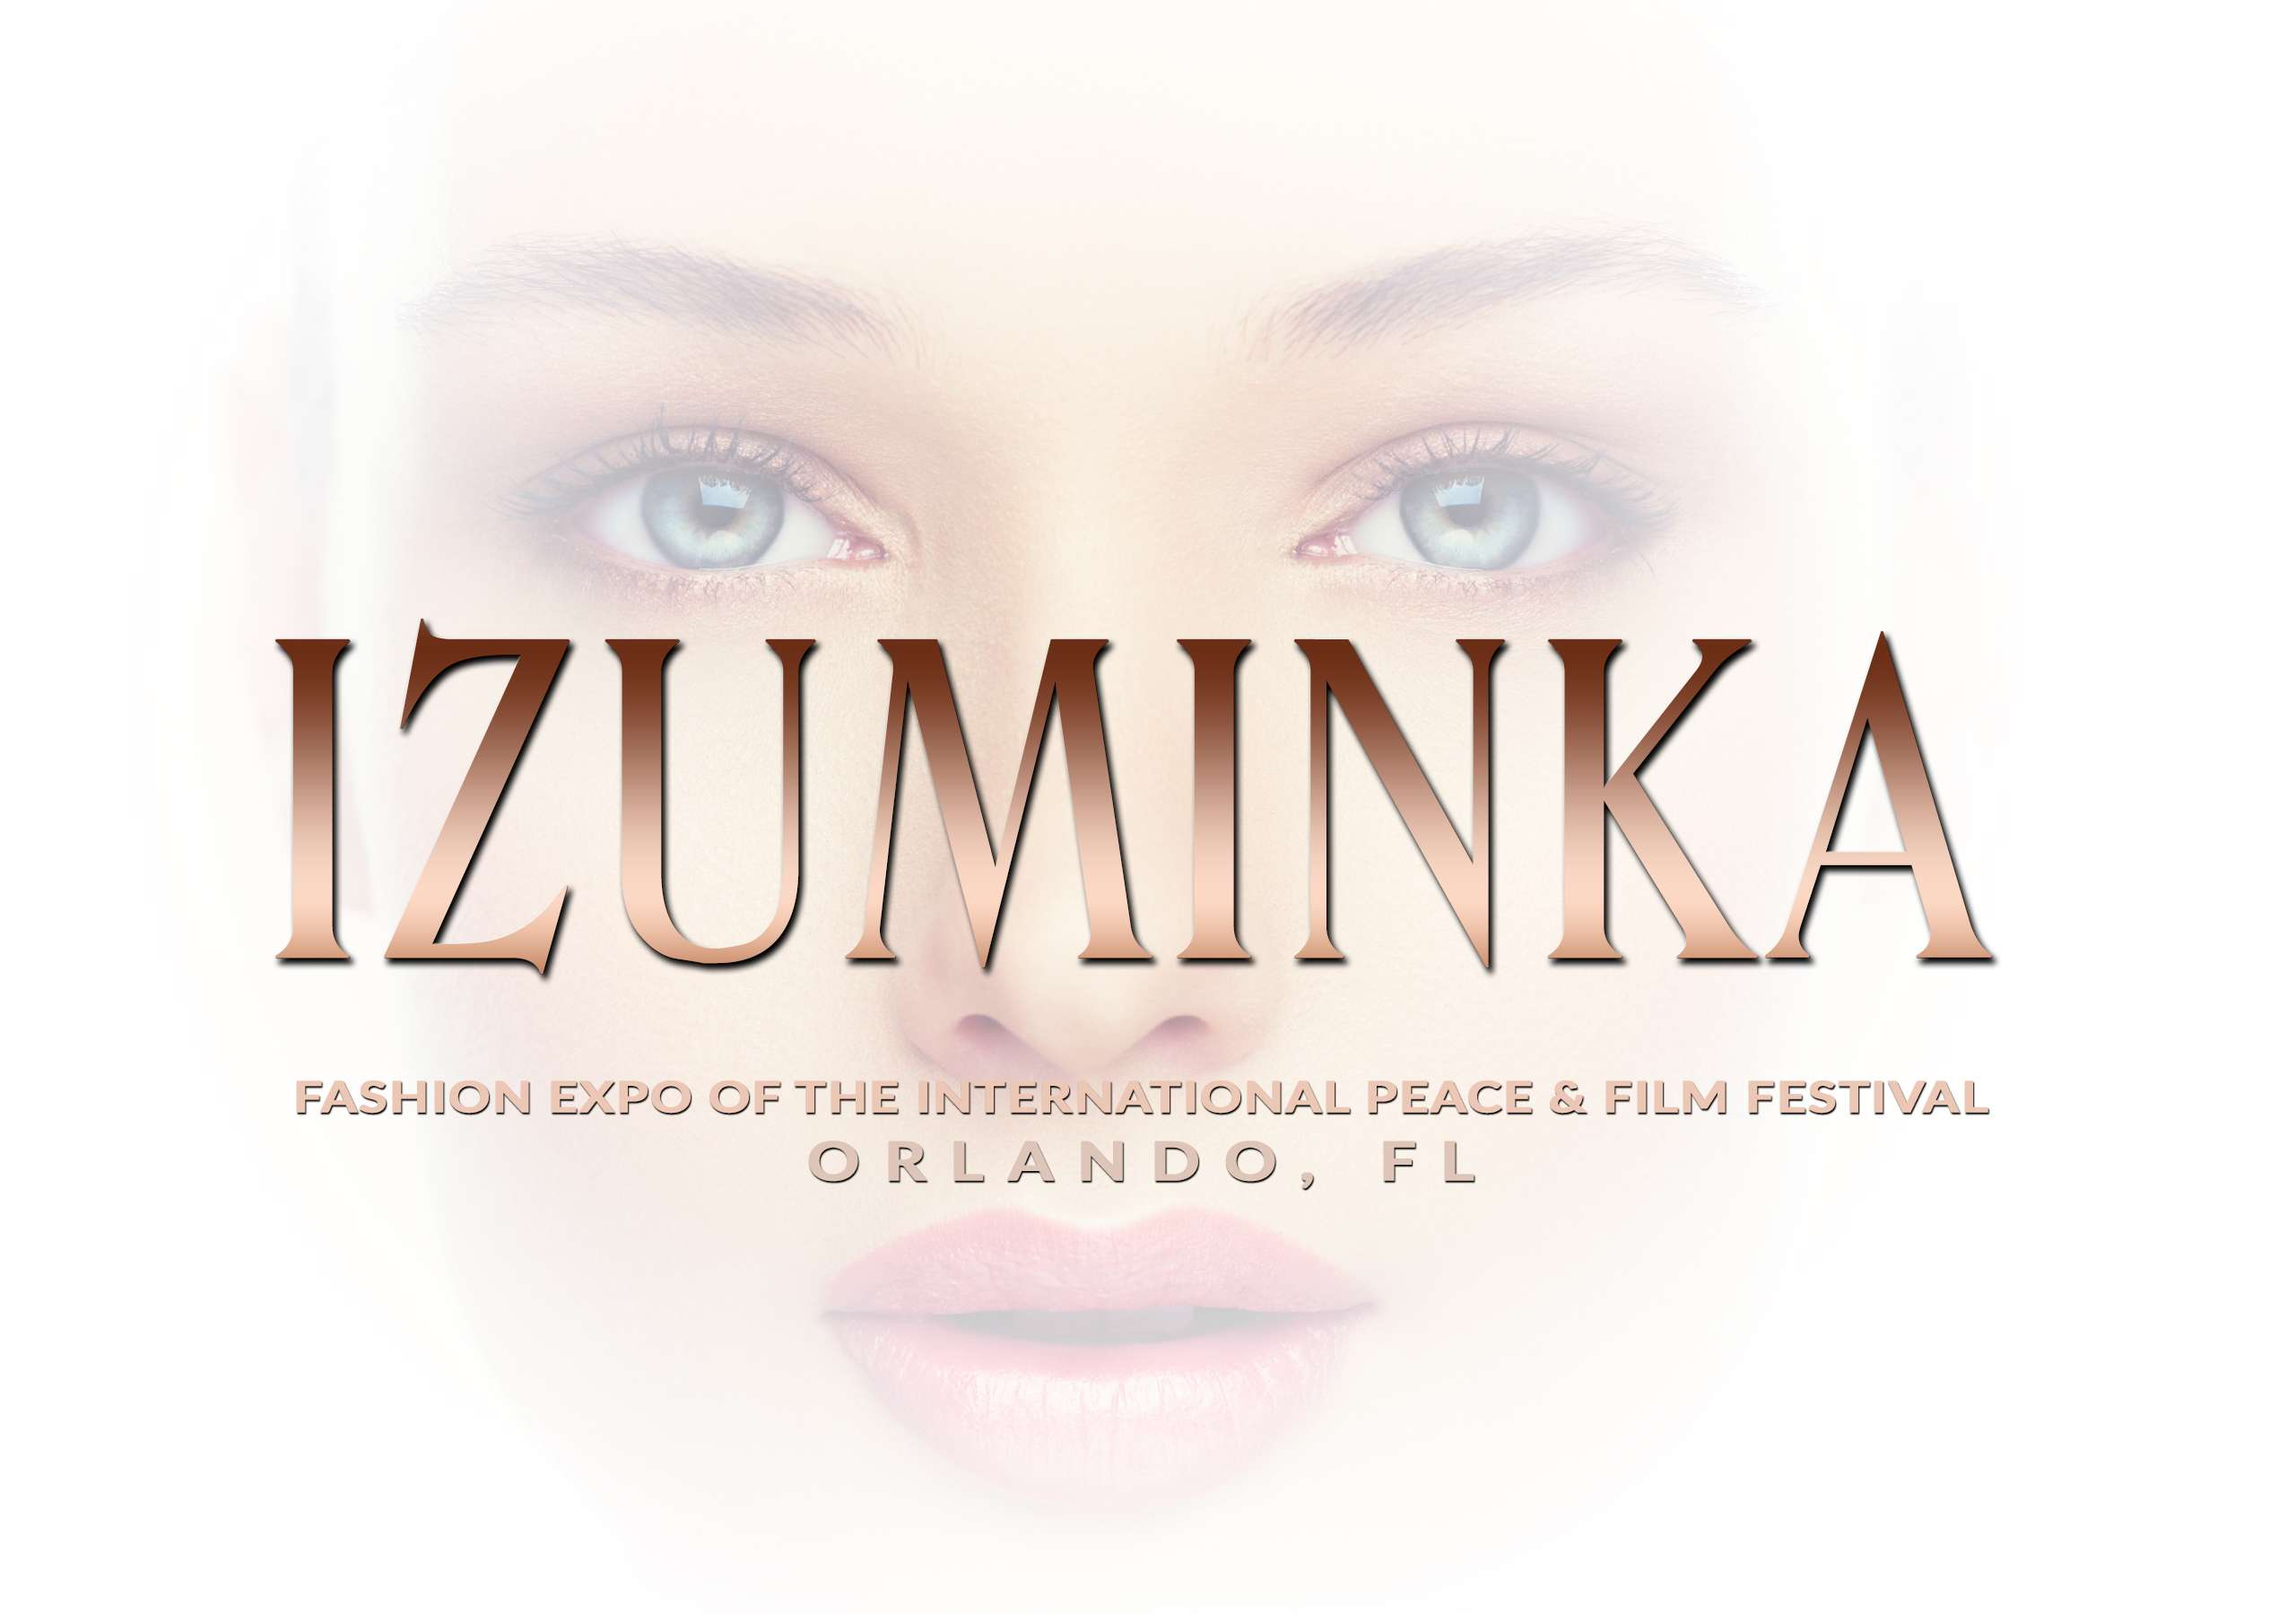 Izuminka Fashion Expo